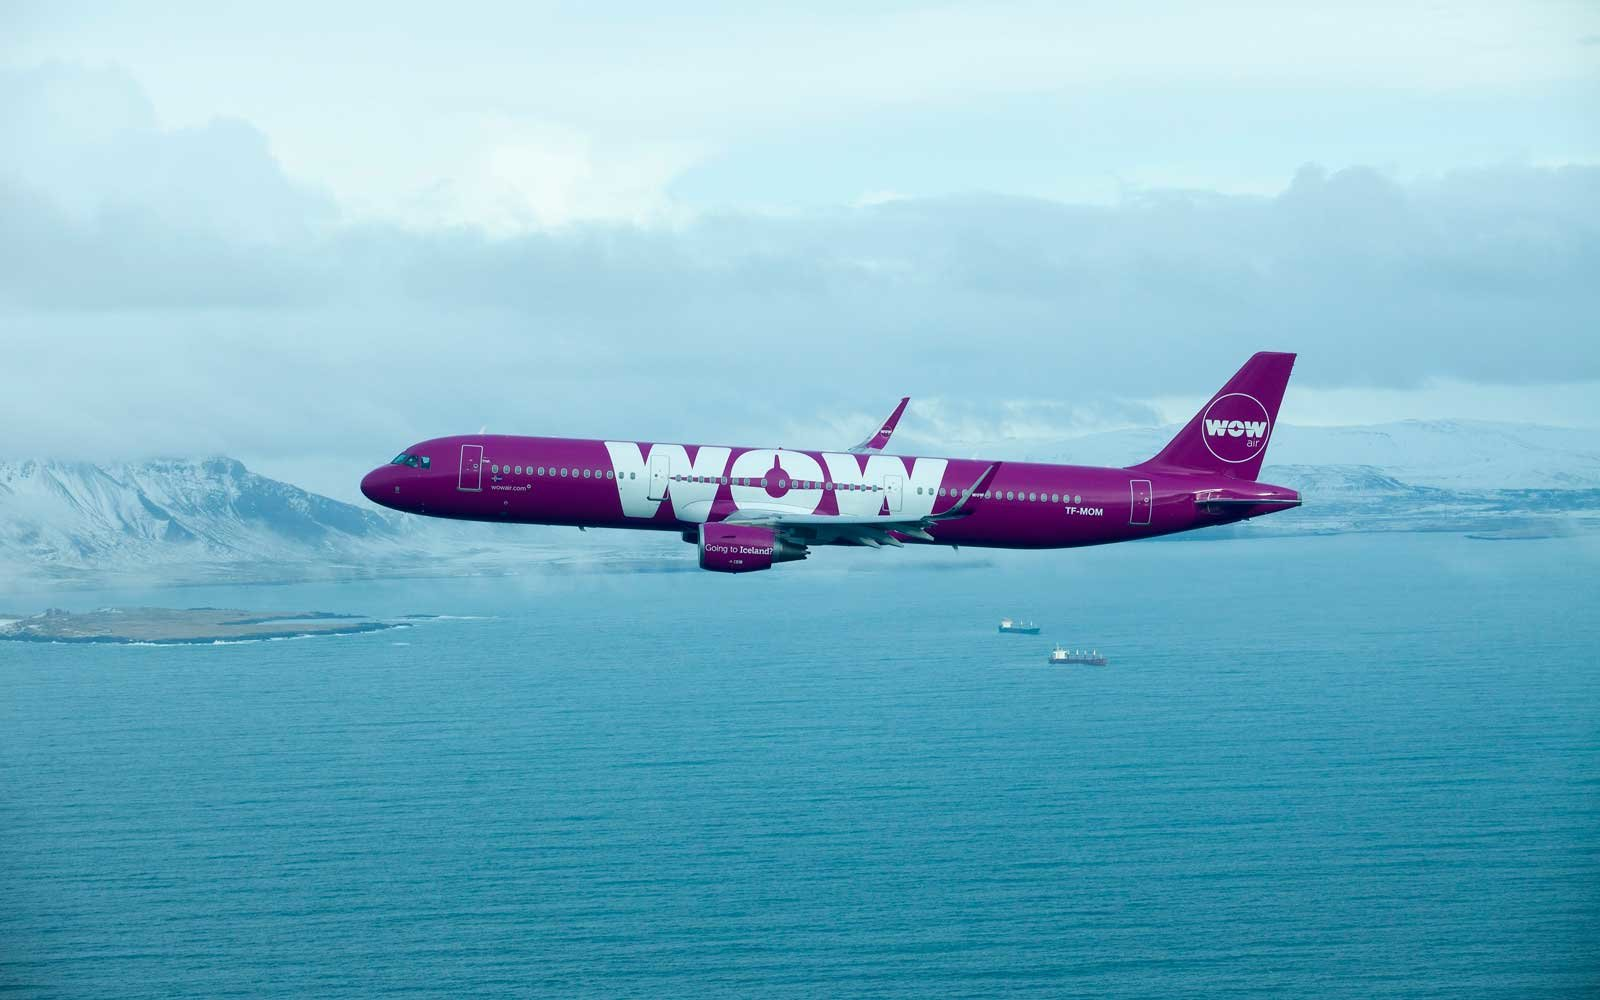 Tarif Travel Should You Buy That Cheap Wow Air Ticket Travel Leisure